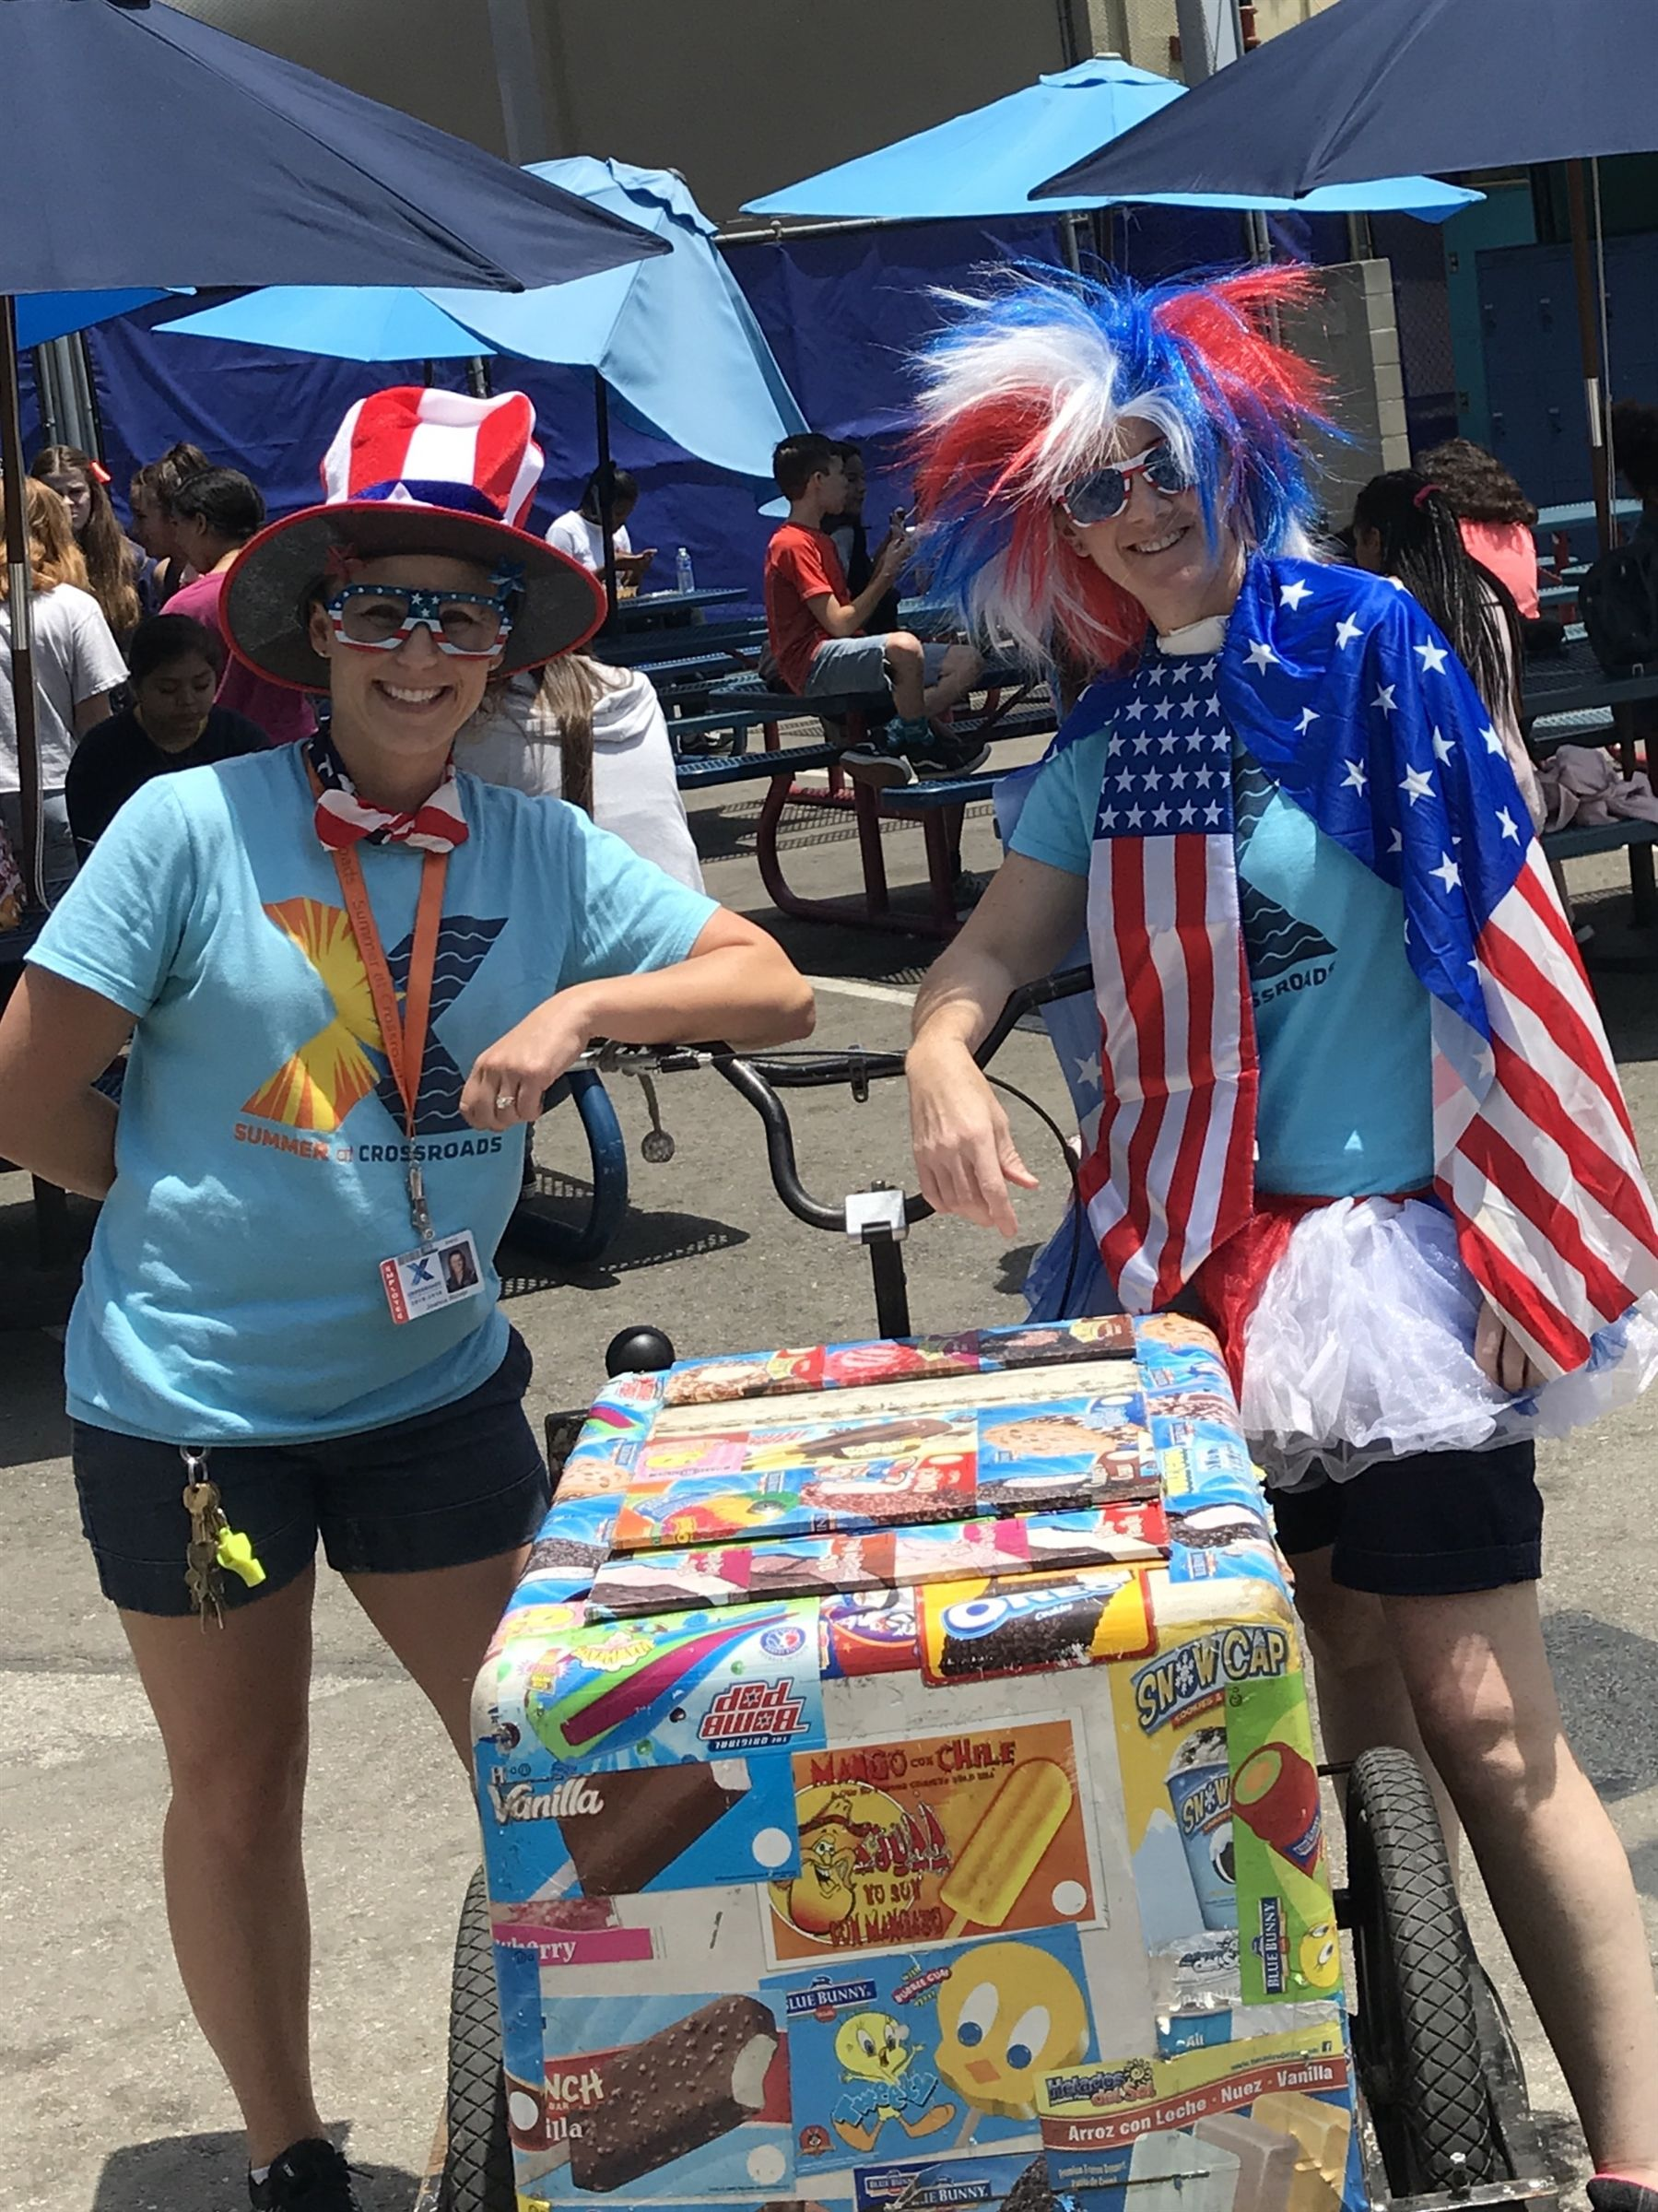 Fun in the Alley with an ice cream social to kick off 4th of July.